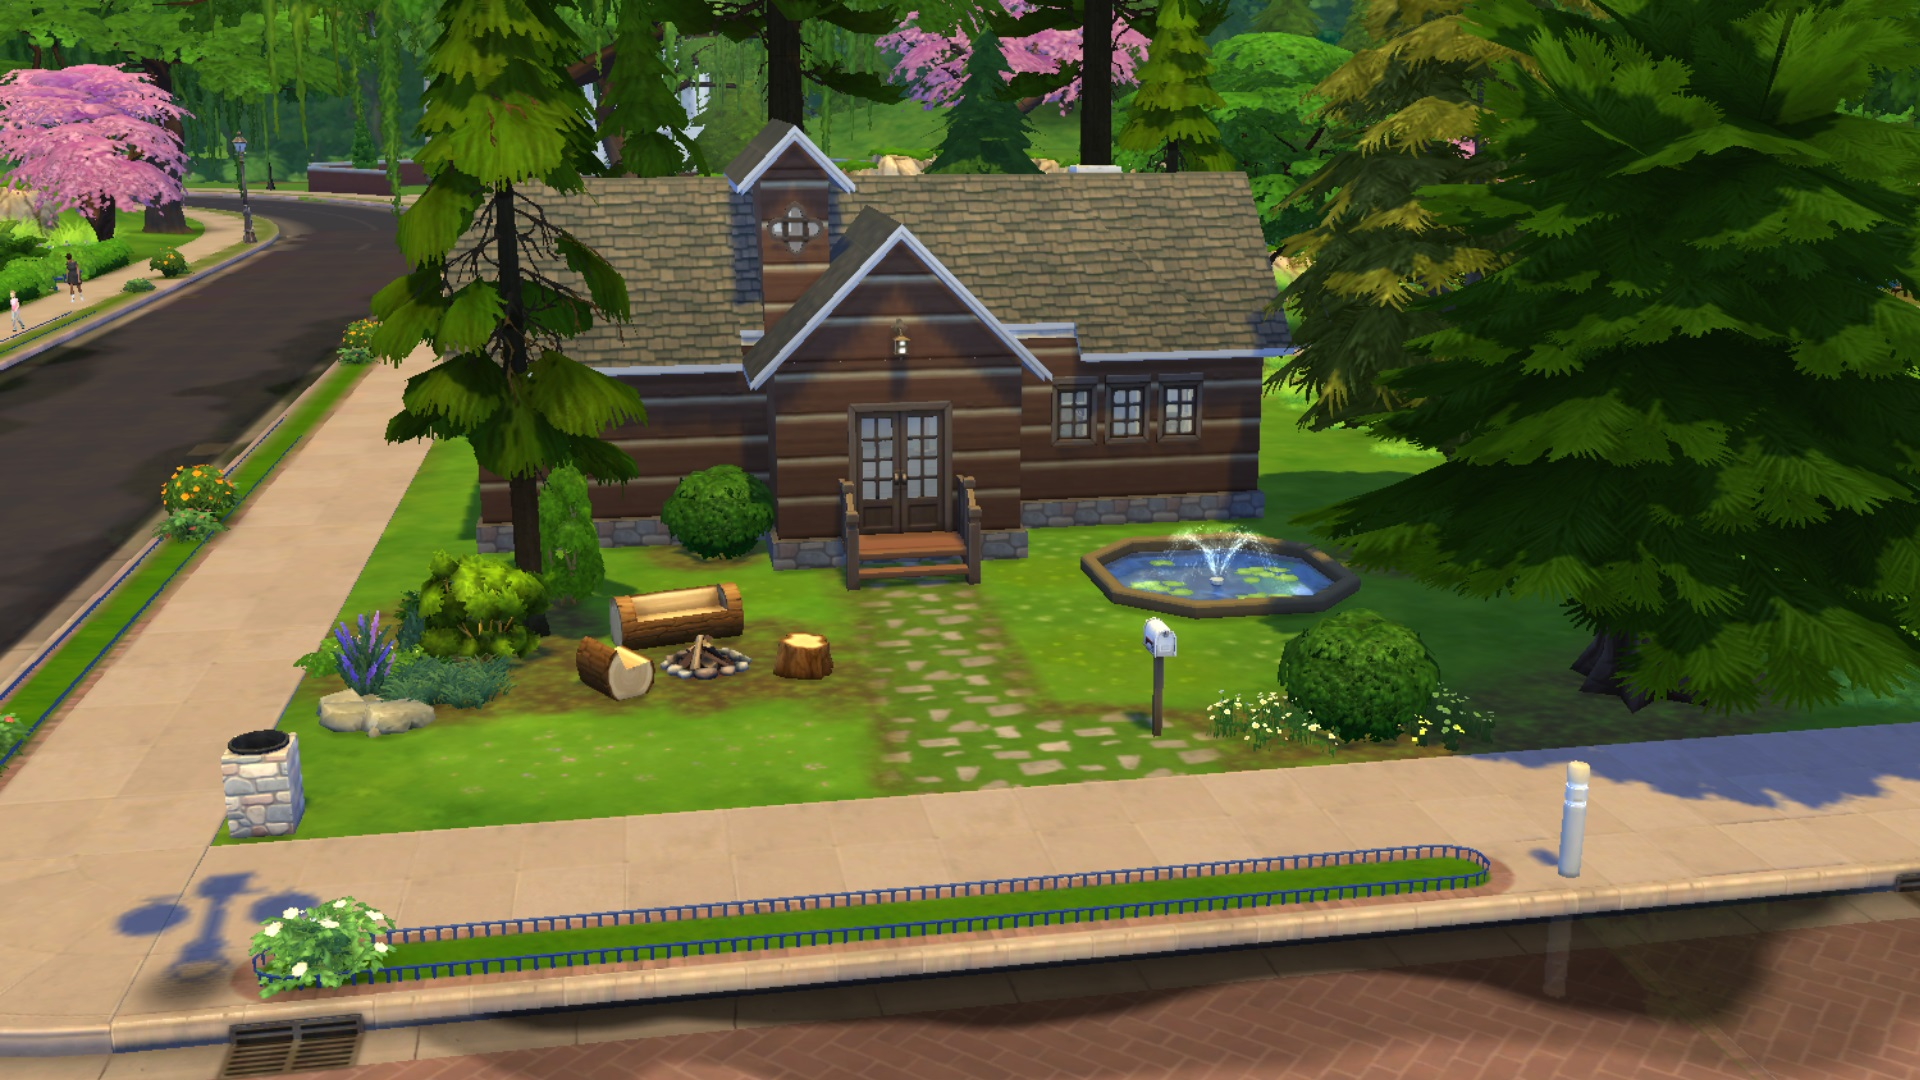 Maisons cosy cottage cologique contemporaine mais for Construire une maison sims 3 xbox 360